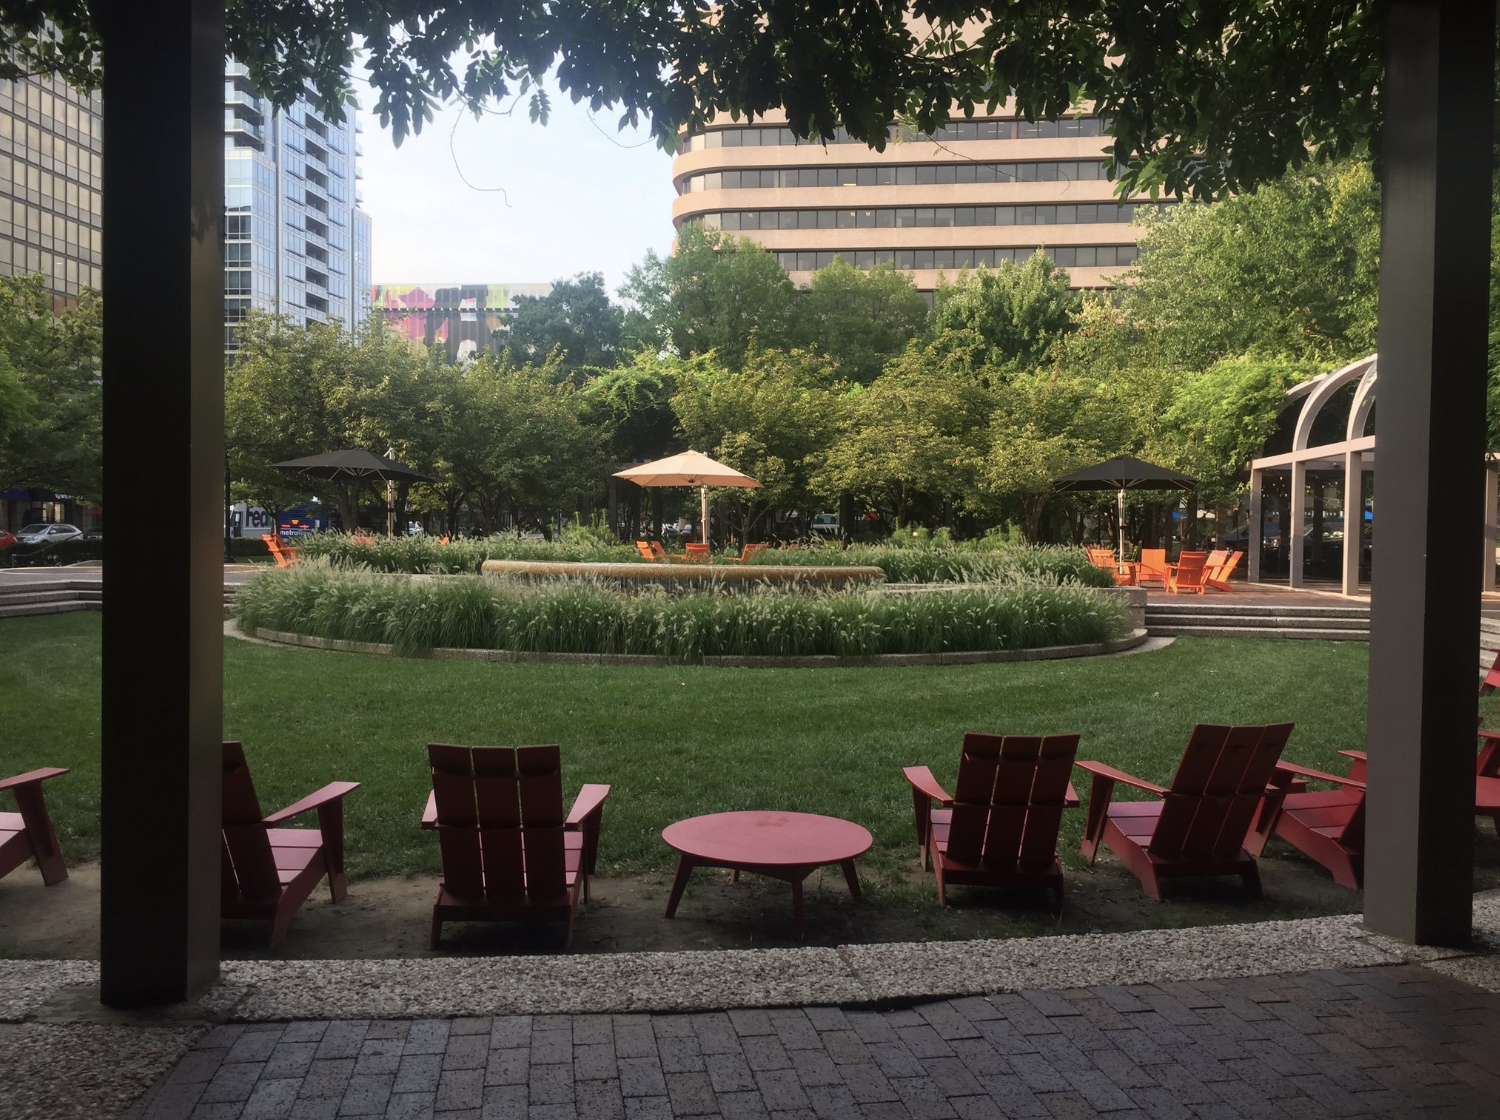 Even in the summer, Crystal City seems empty but not in a bad way.